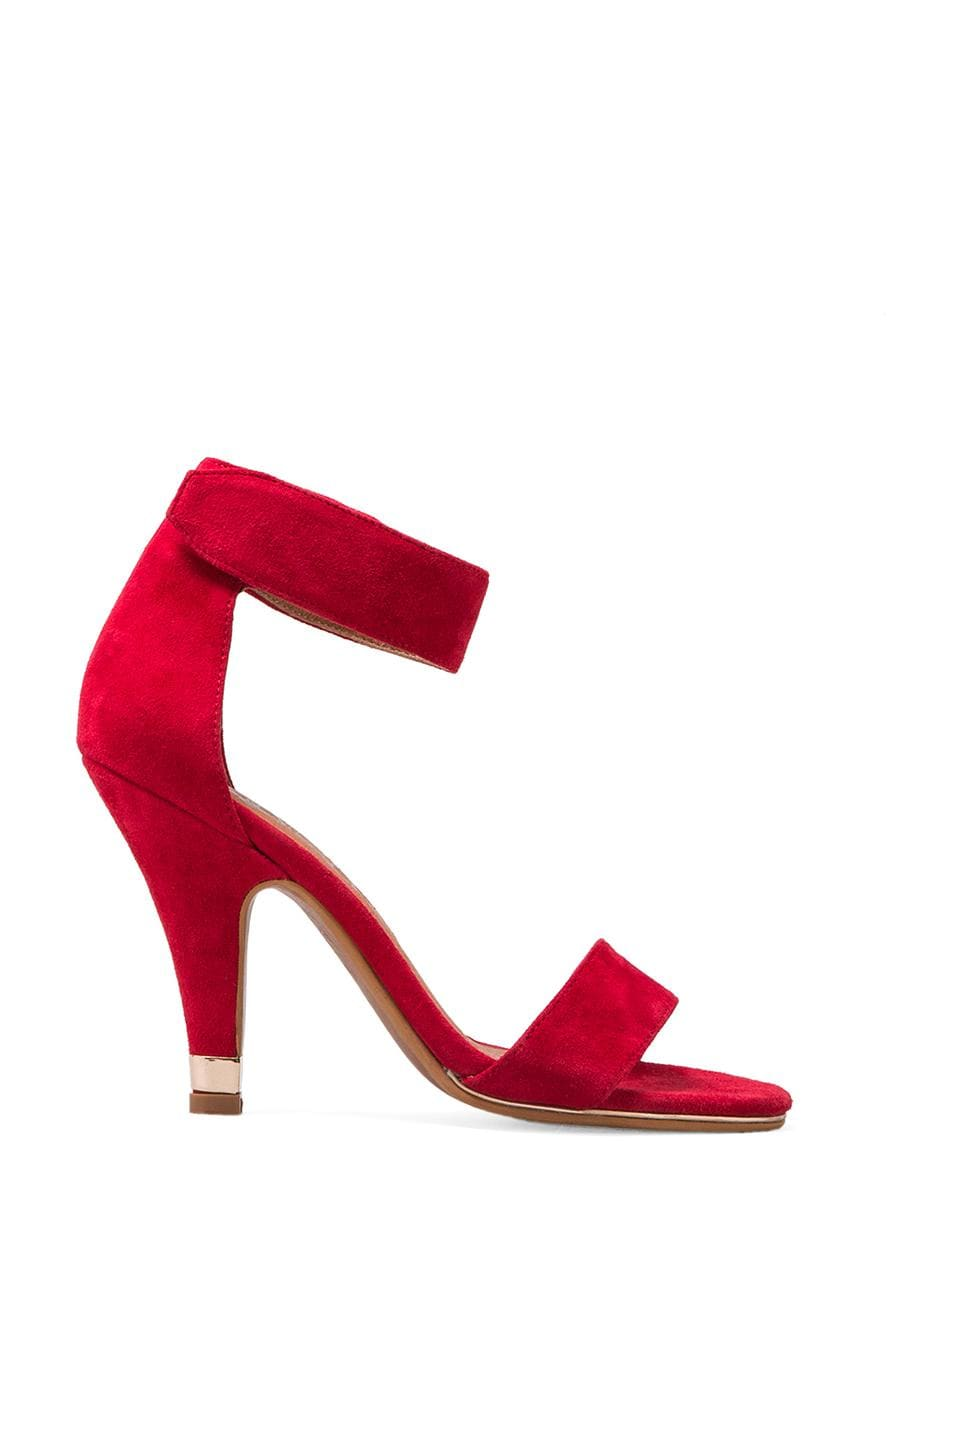 Jeffrey Campbell Charvet Suede Pump in Red